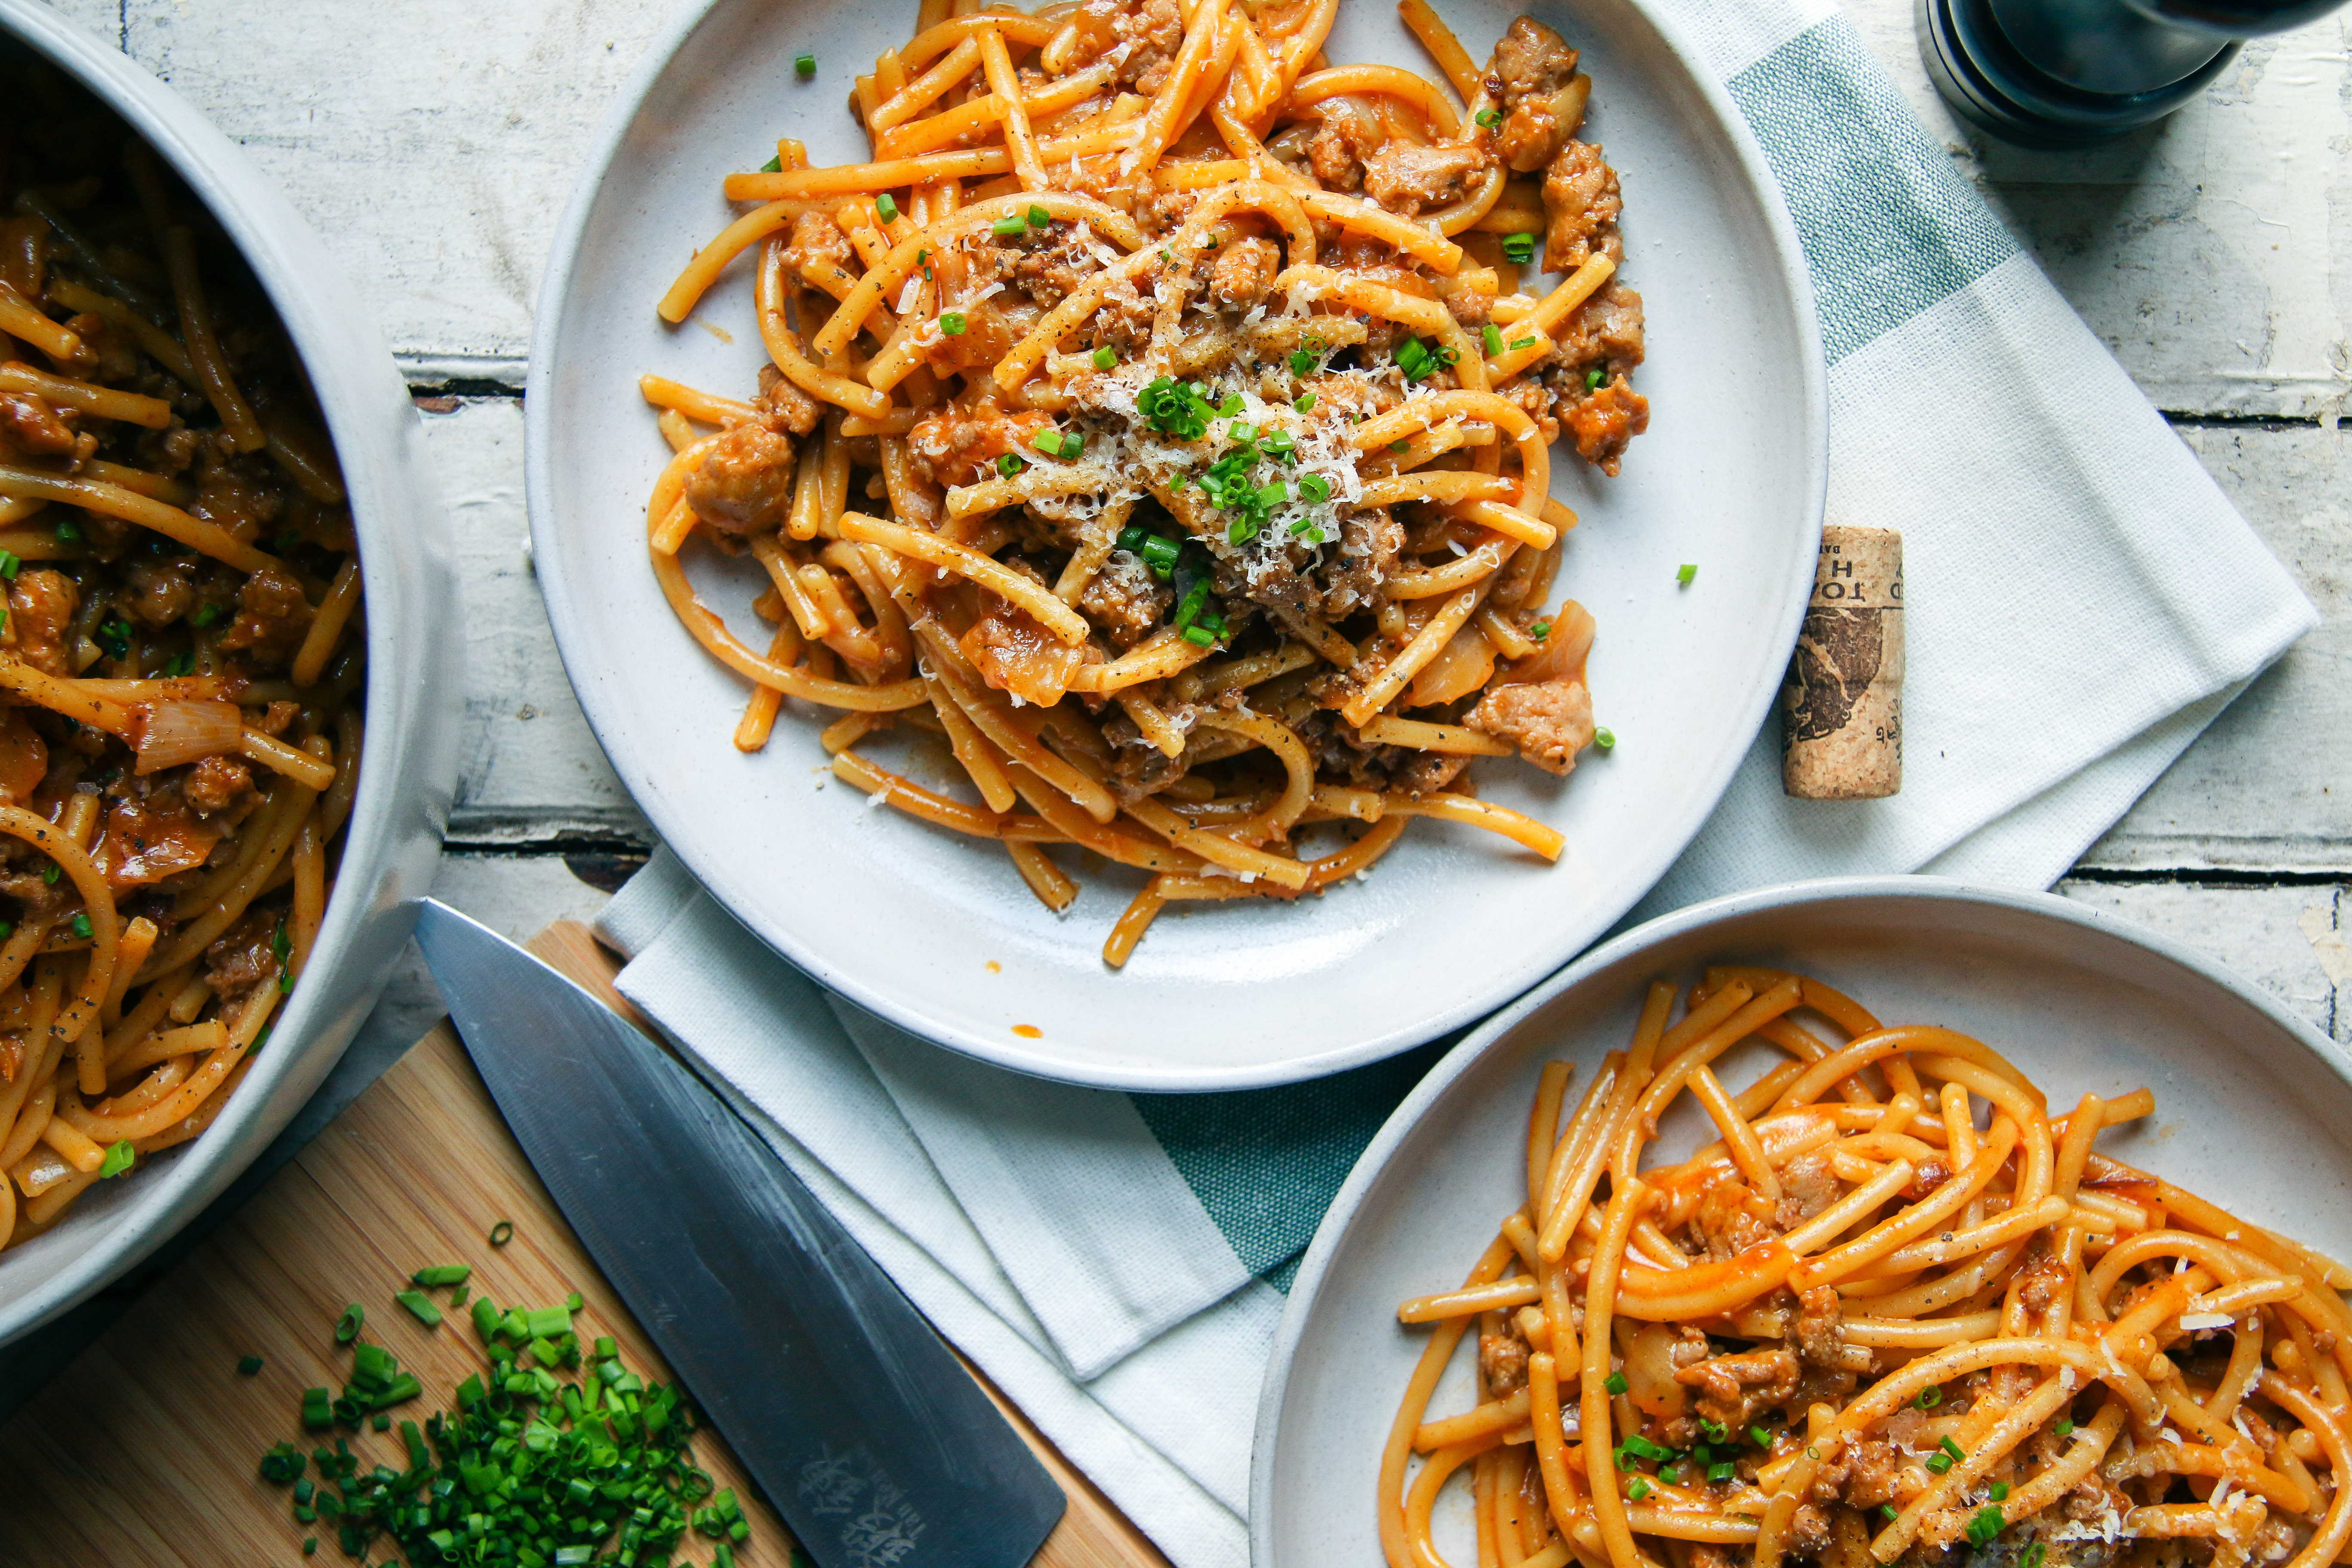 Paprika White Wine Bucatini with Italian Sausage | One Pot Pasta | I Will Not Eat Oysters